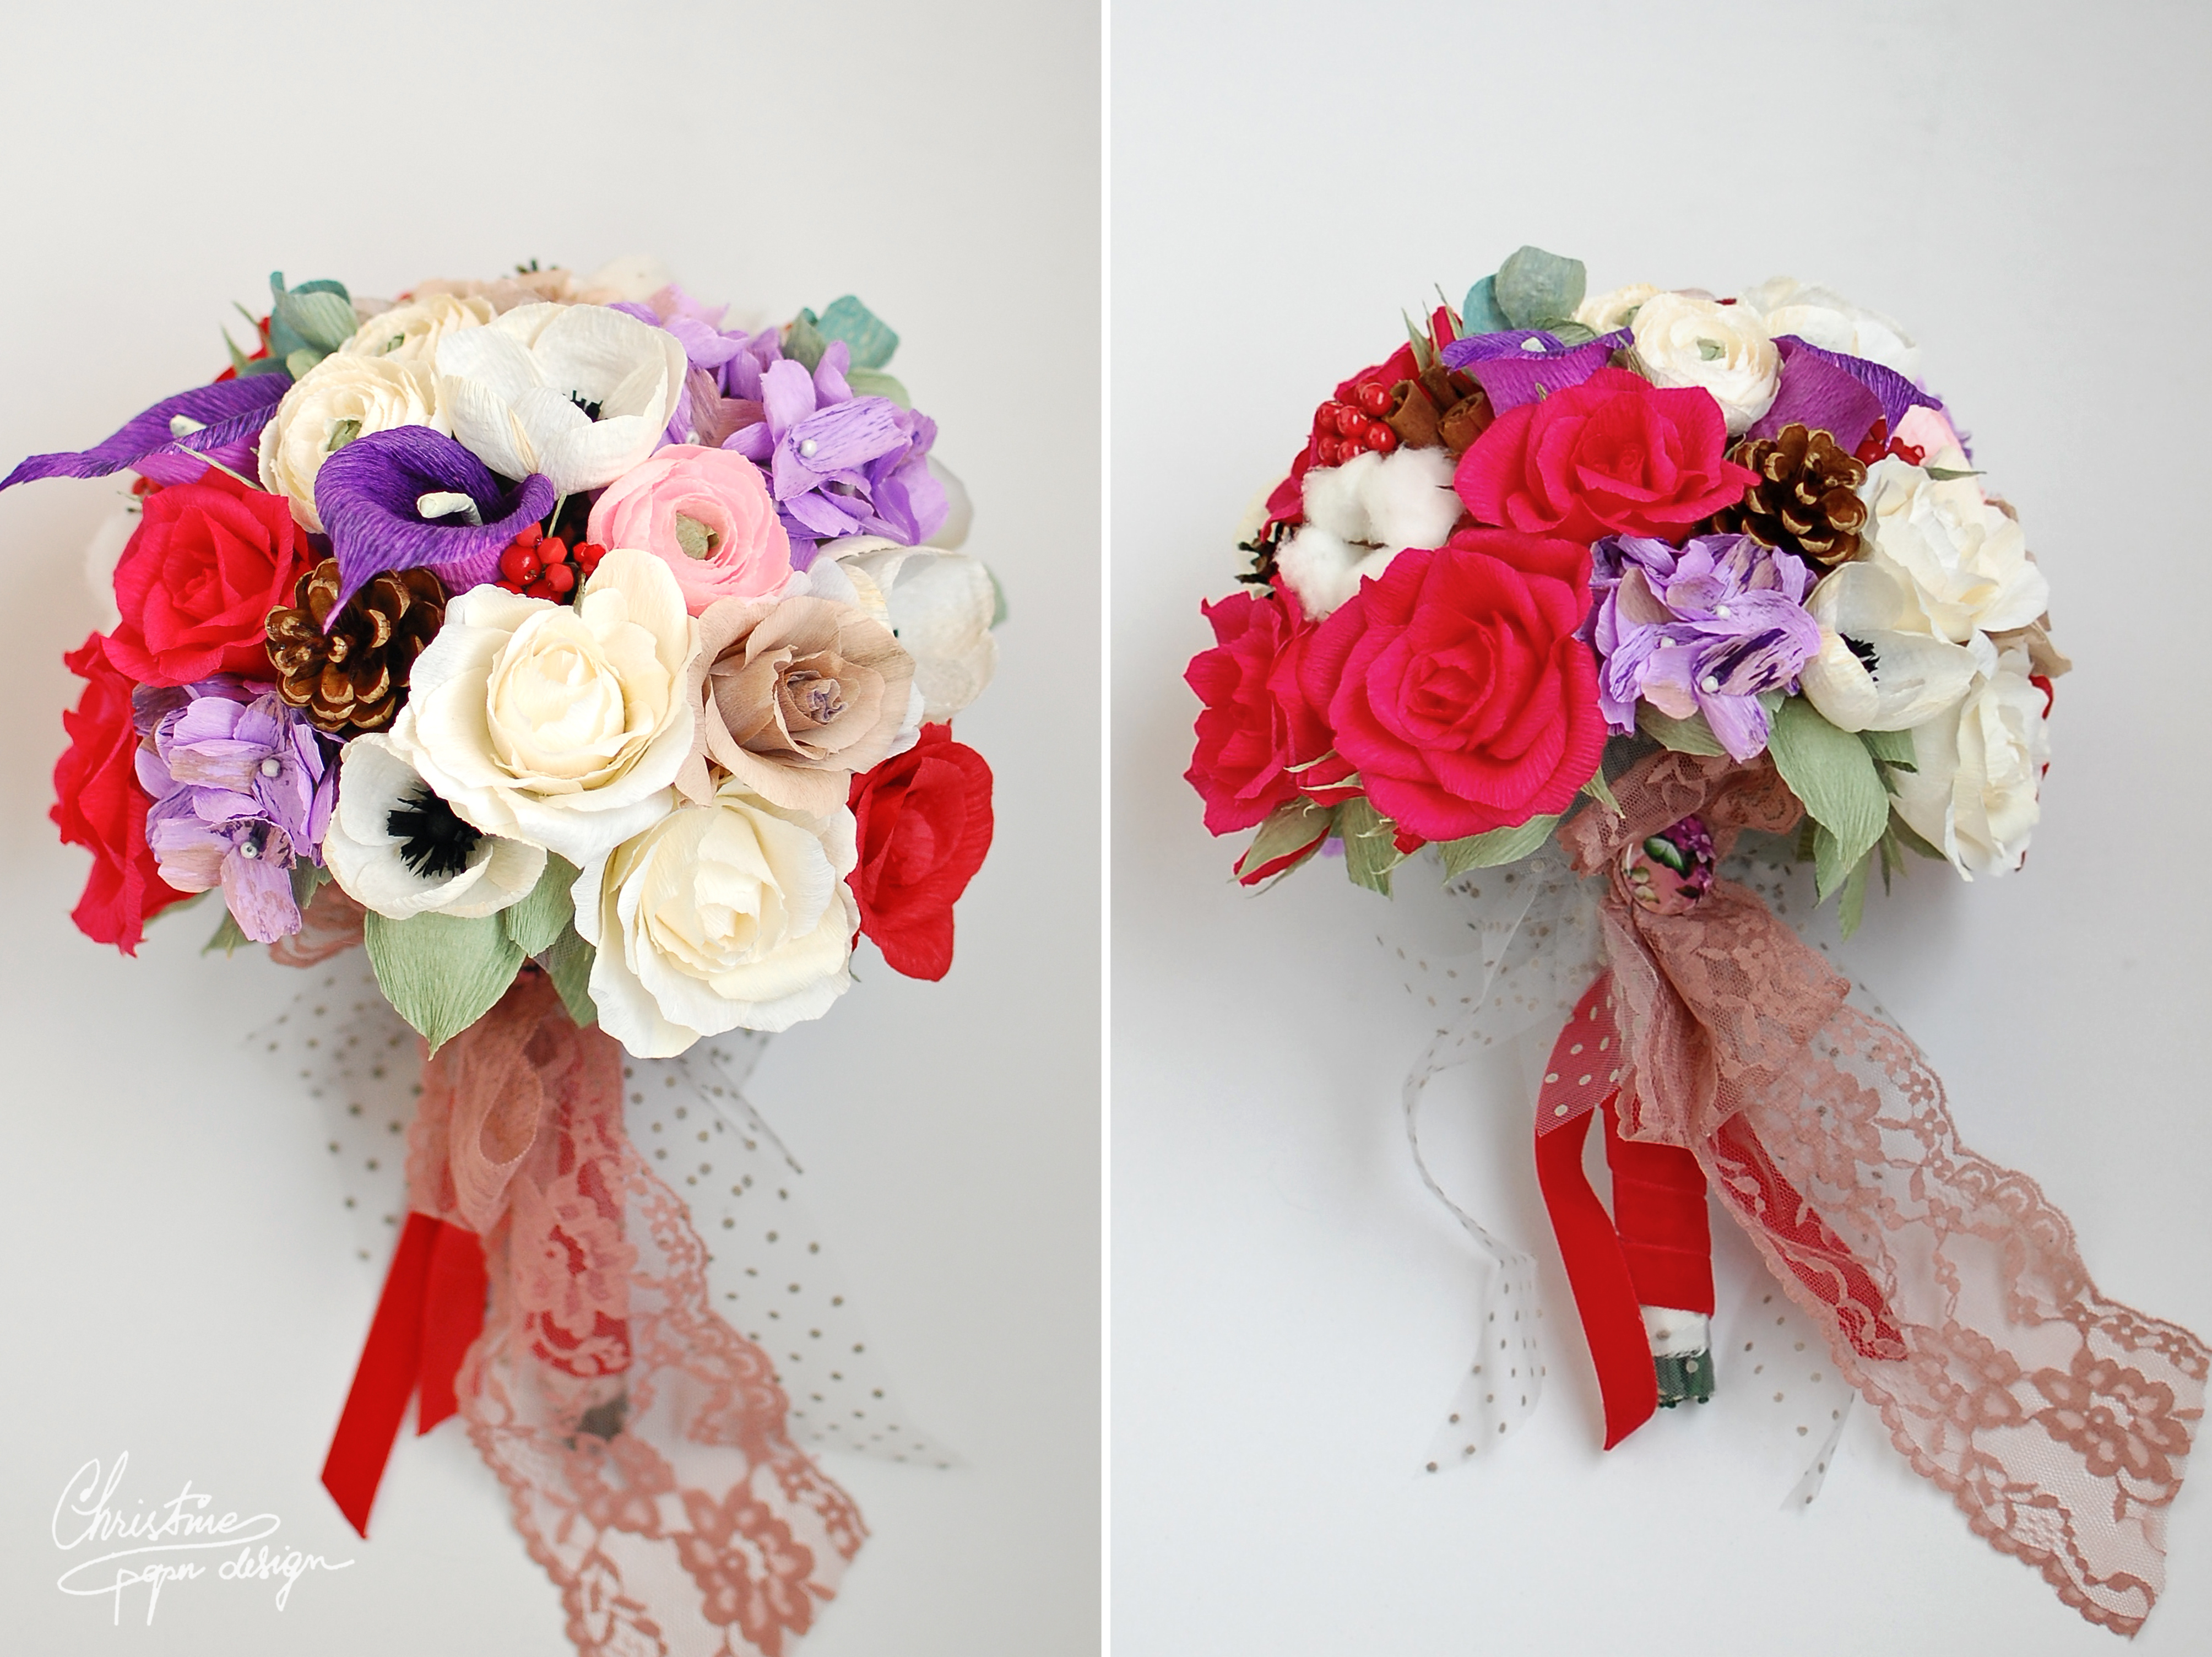 Christine paper design - paper flowers (9)